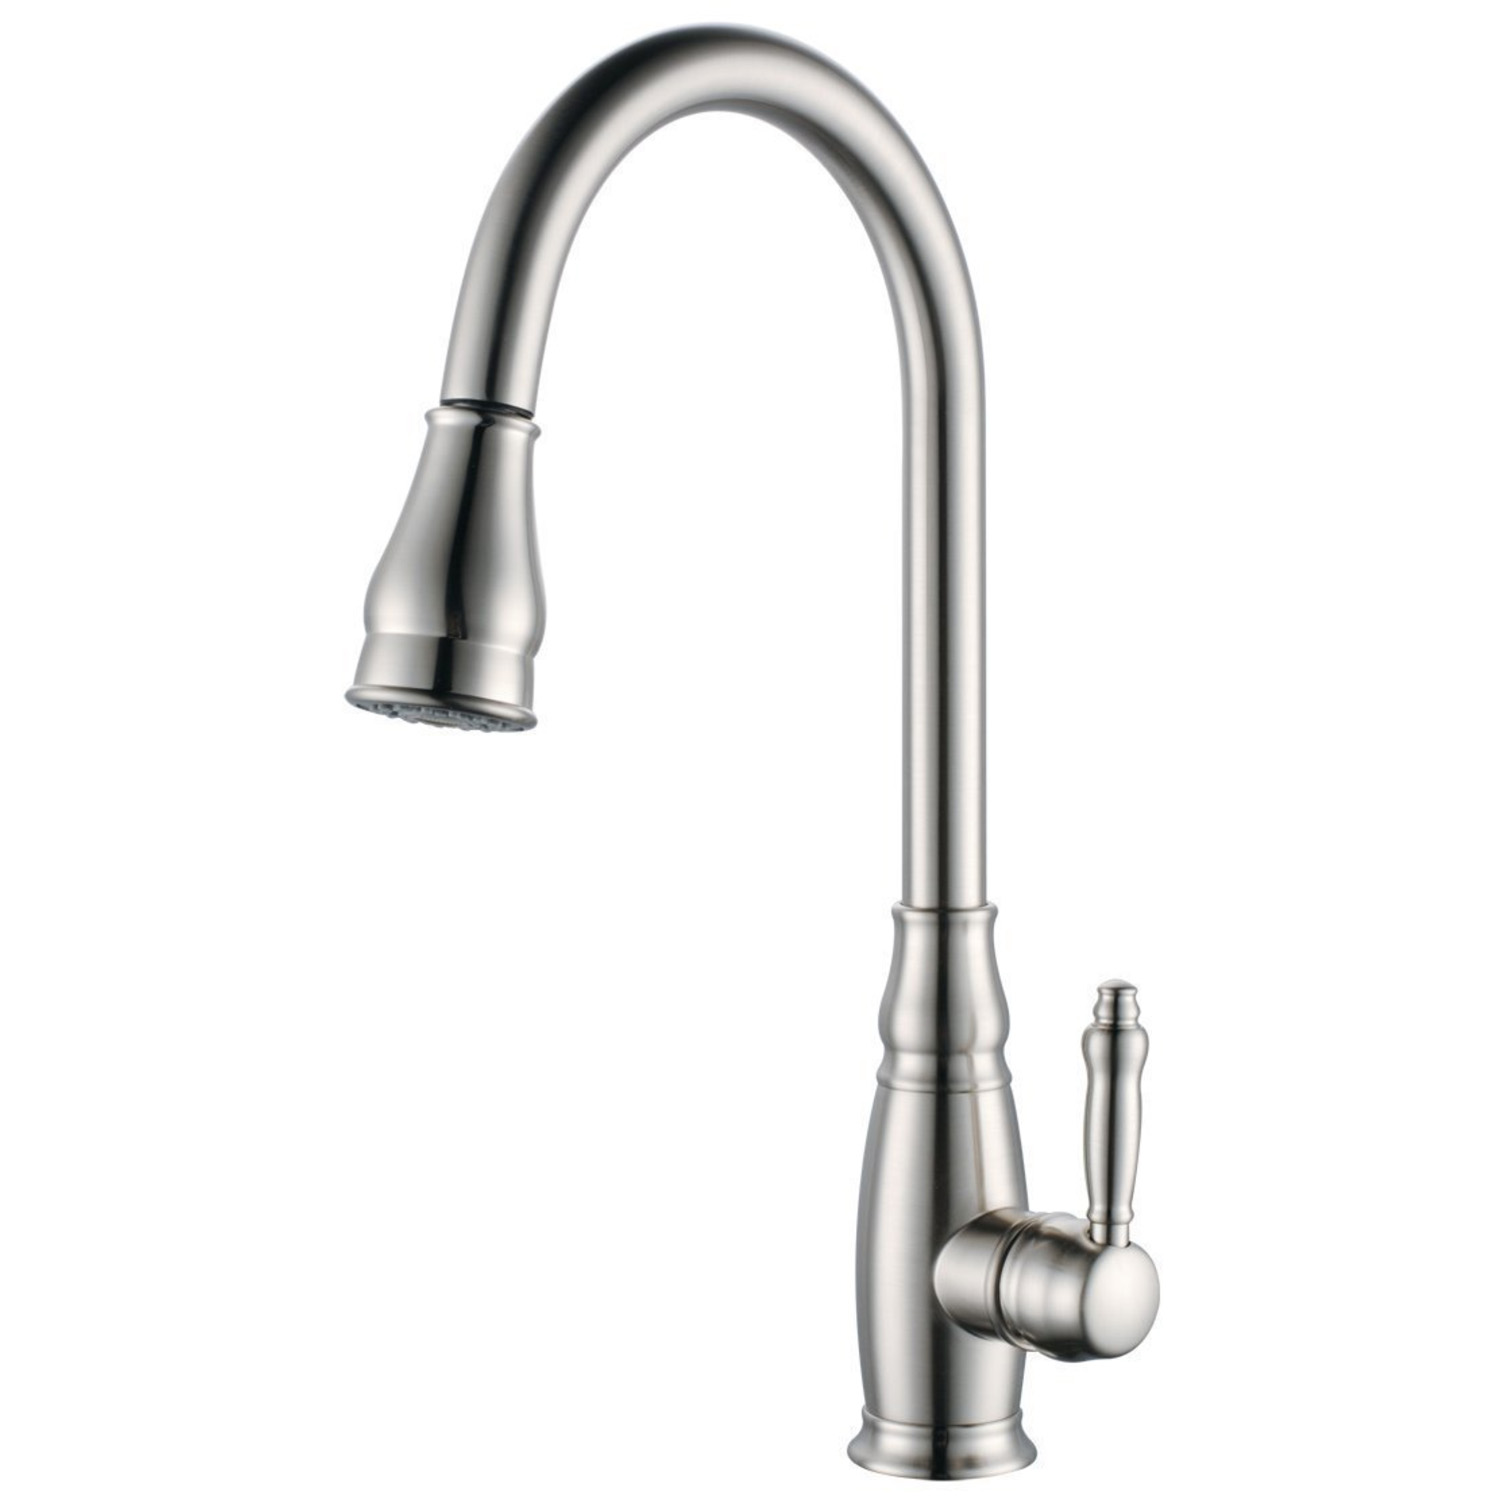 KES Brass Bar Sink Faucet with Pull Down Sprayer Head Modern